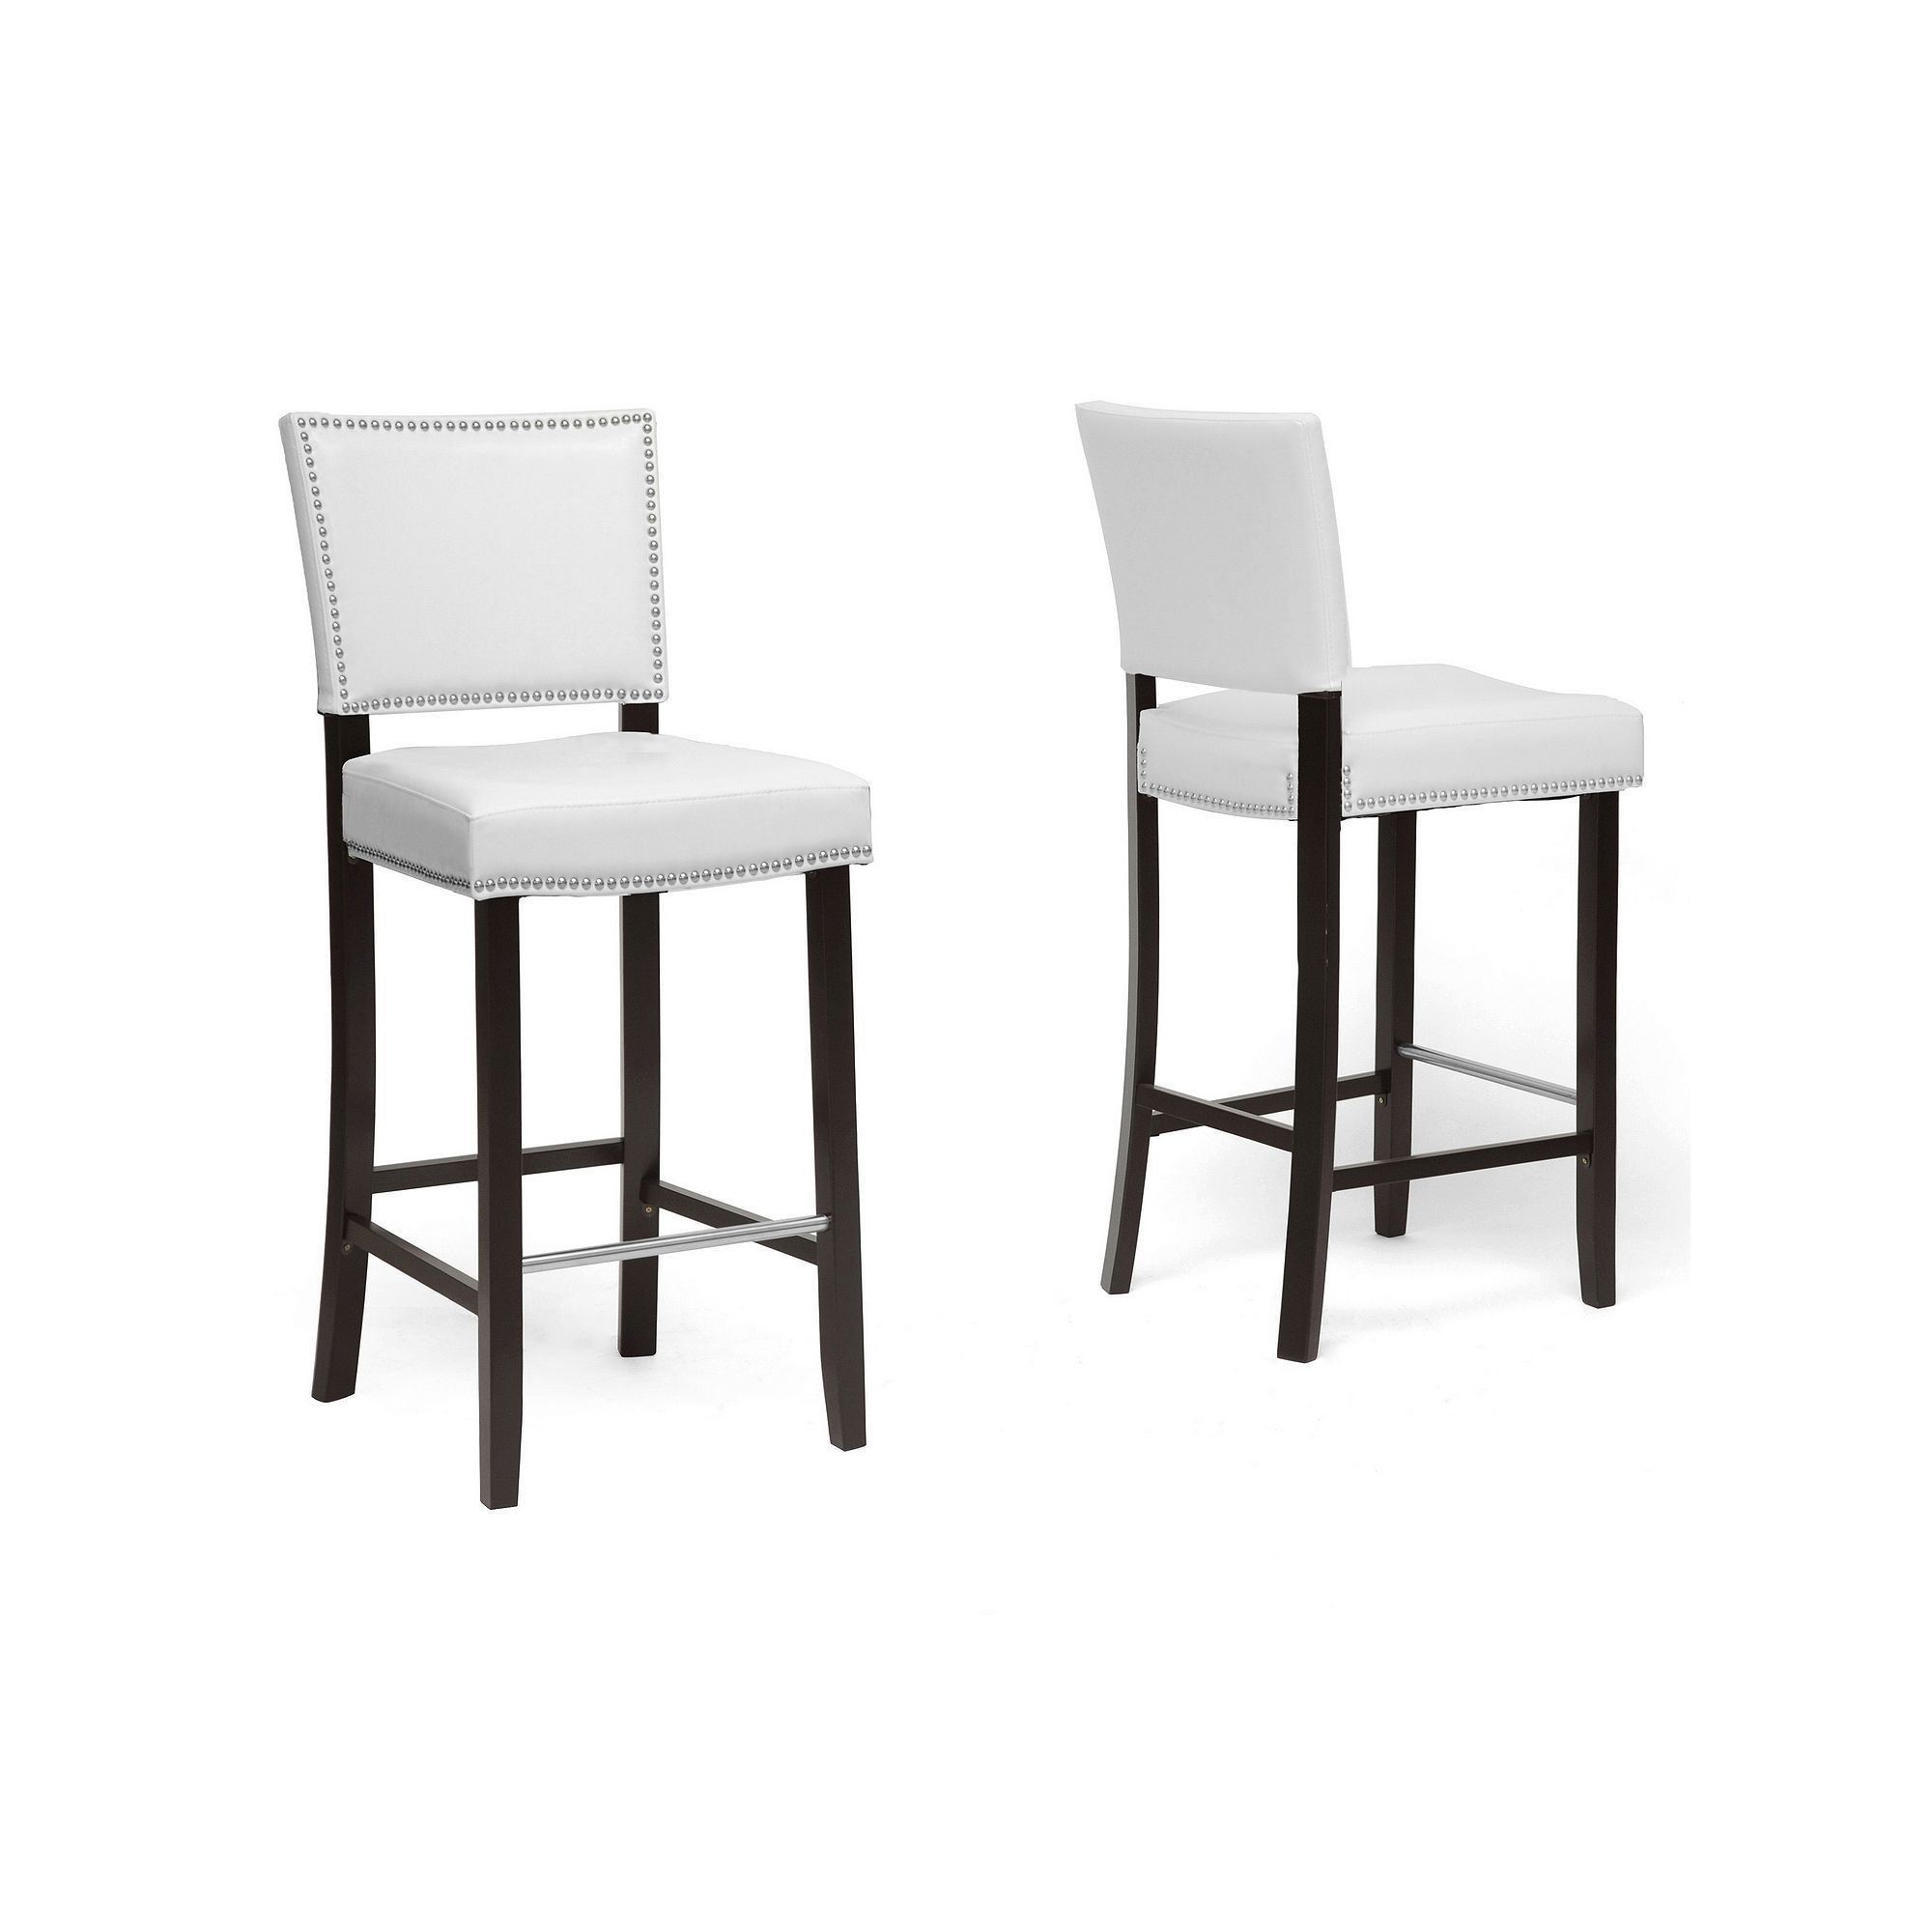 baxton studio 2 piece aries bar stool set products rh ar pinterest com